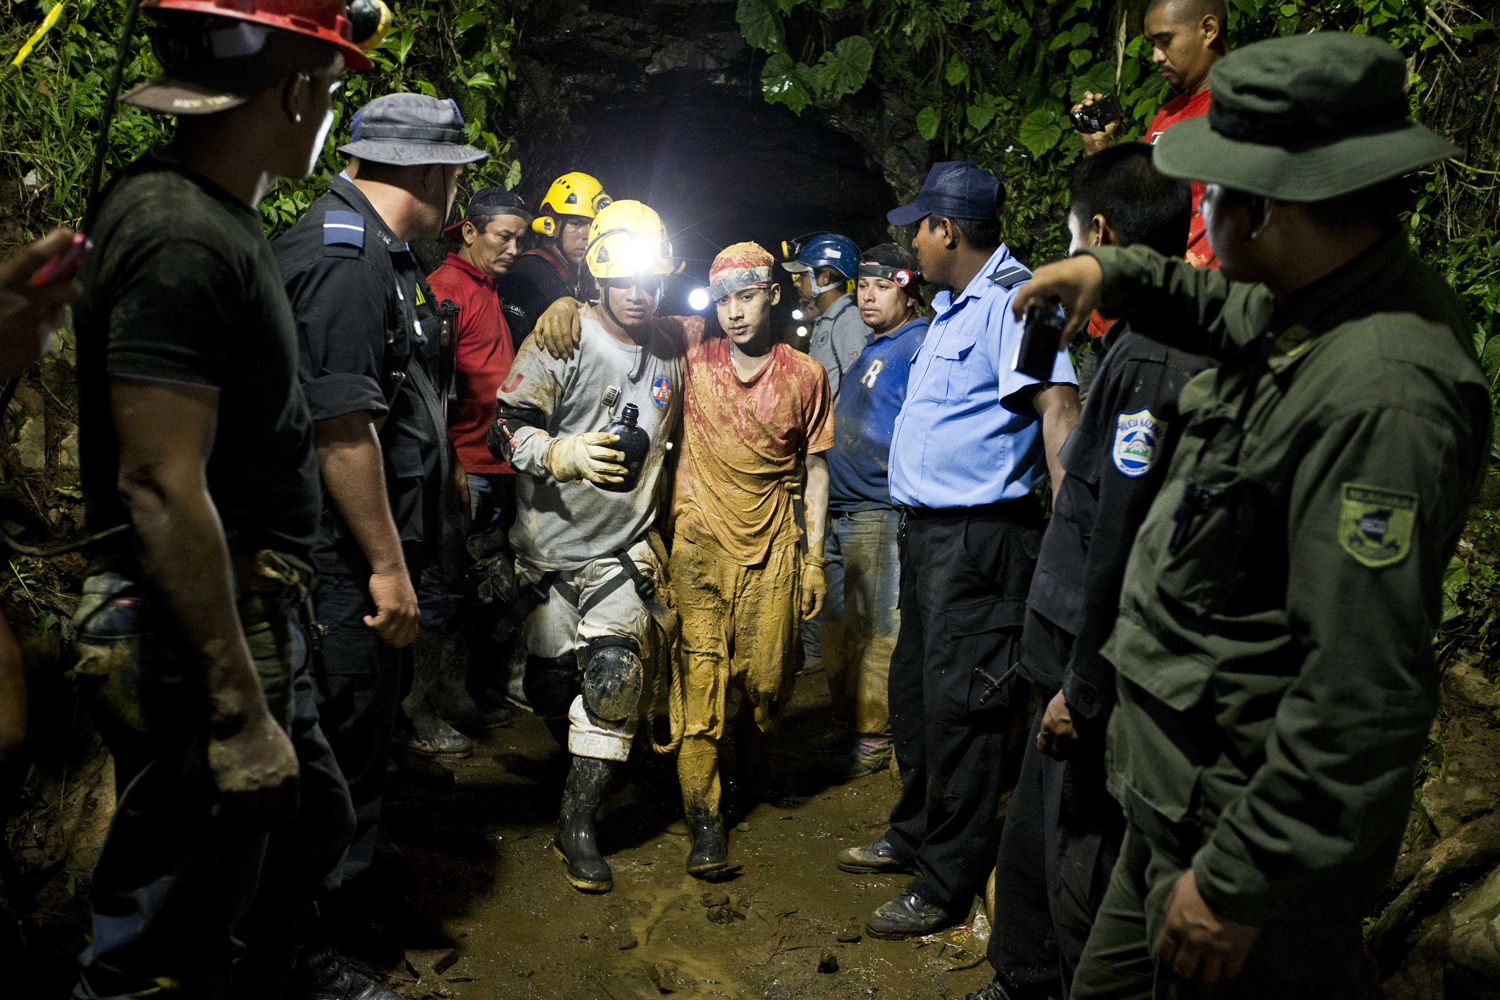 Aug. 29, 2014. Leber Vivas Gonzales, 16, center right, is accompanied by a rescue worker as he walks away from the entrance to the El Comal gold and silver mine in Bonanza, Nicaragua. Vivas was the first of 11 freelance gold miners trapped by a collapse in the mine to be rescued and crews were working early Saturday to free more the rest, officials said.